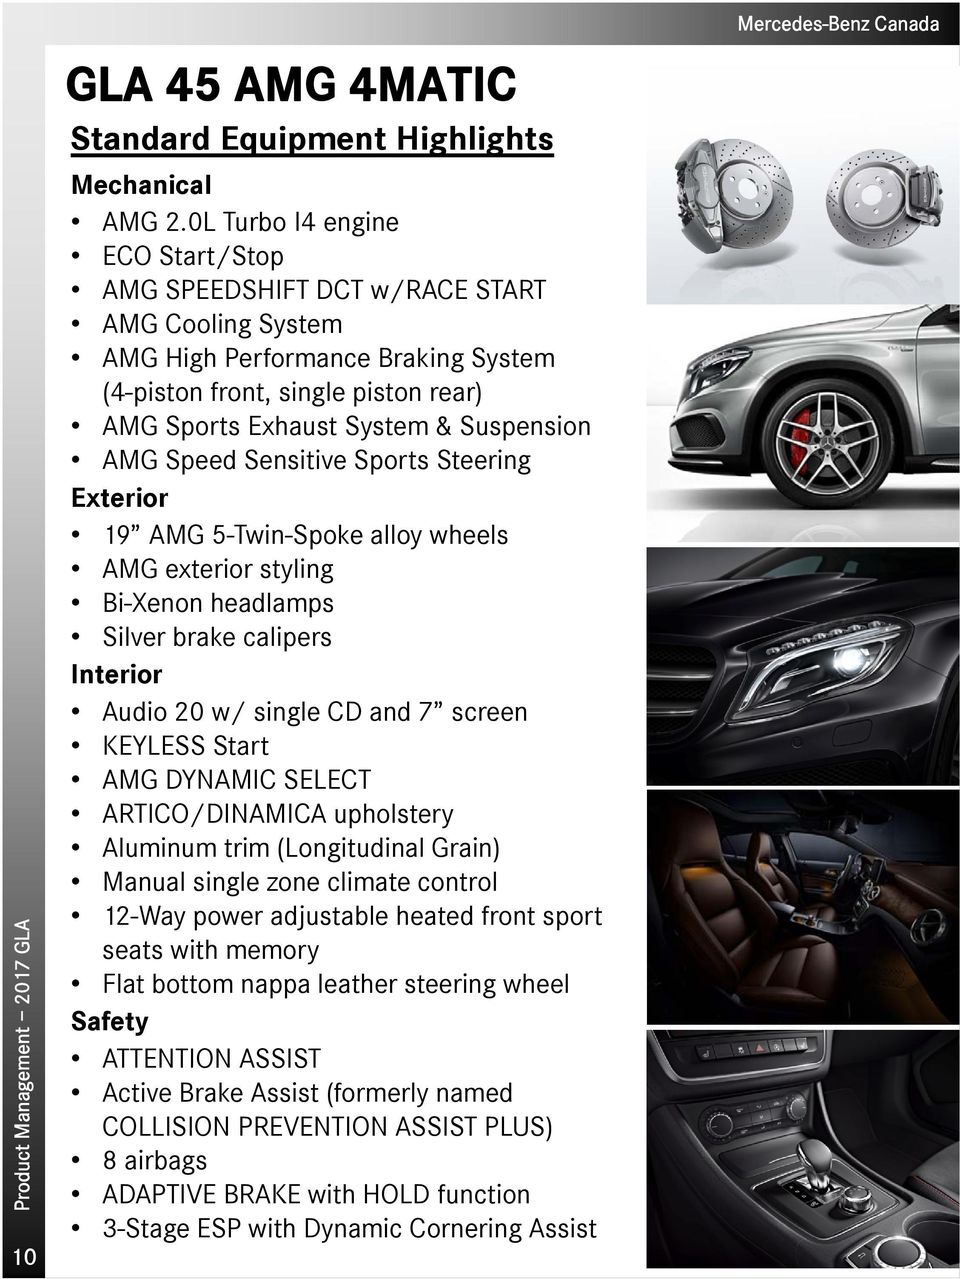 AMG Speed Sensitive Sports Steering Exterior 19 AMG 5-Twin-Spoke alloy wheels AMG exterior styling Bi-Xenon headlamps Silver brake calipers Interior Audio 20 w/ single CD and 7 screen KEYLESS Start